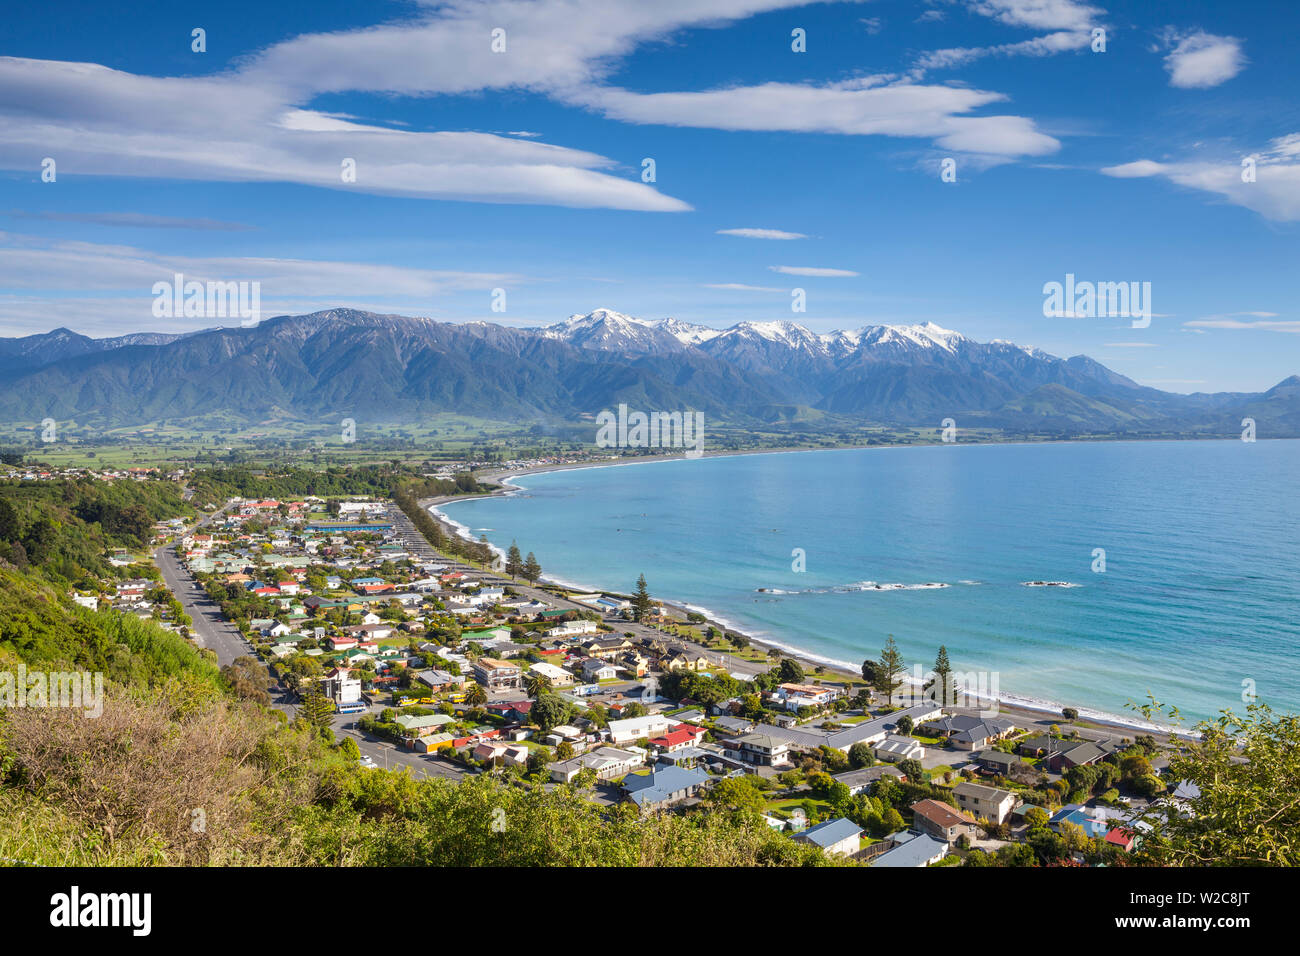 Elevated view over the picturesque coastal town of Kaikoura, Kaikoura, South Island, New Zealand - Stock Image